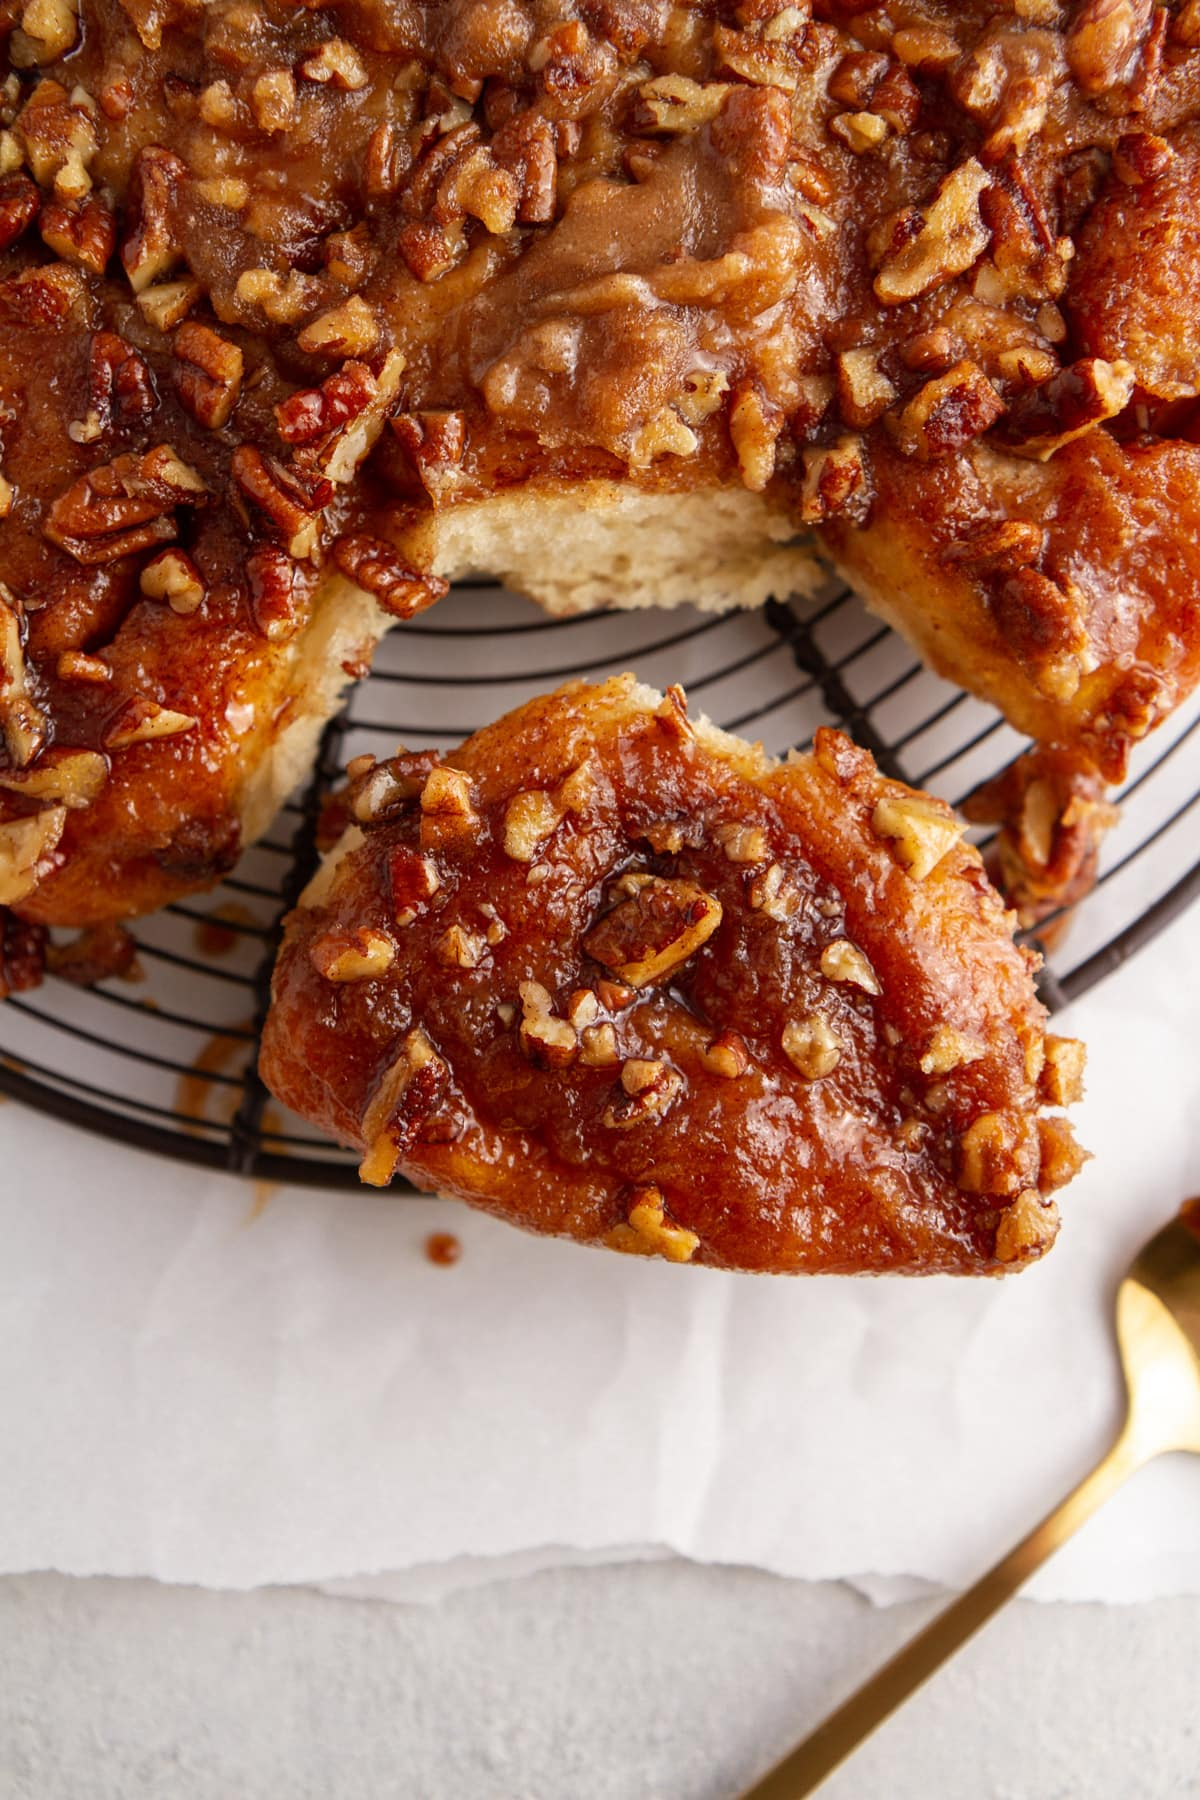 caramel pecan sticky buns on cooling rack